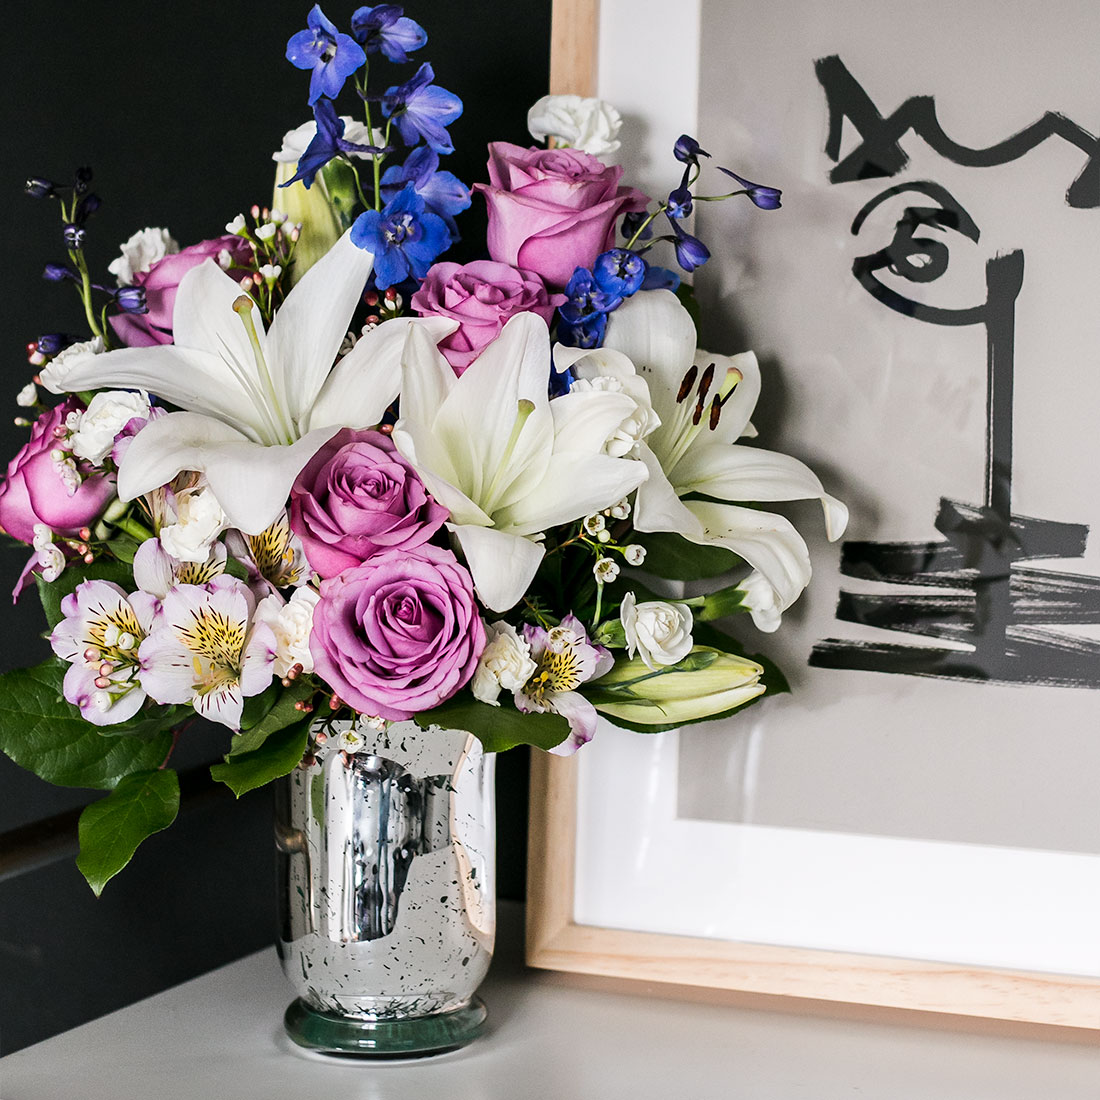 White lilies, purple roses, white mums, and more fill a silver vase sitting next to a picture